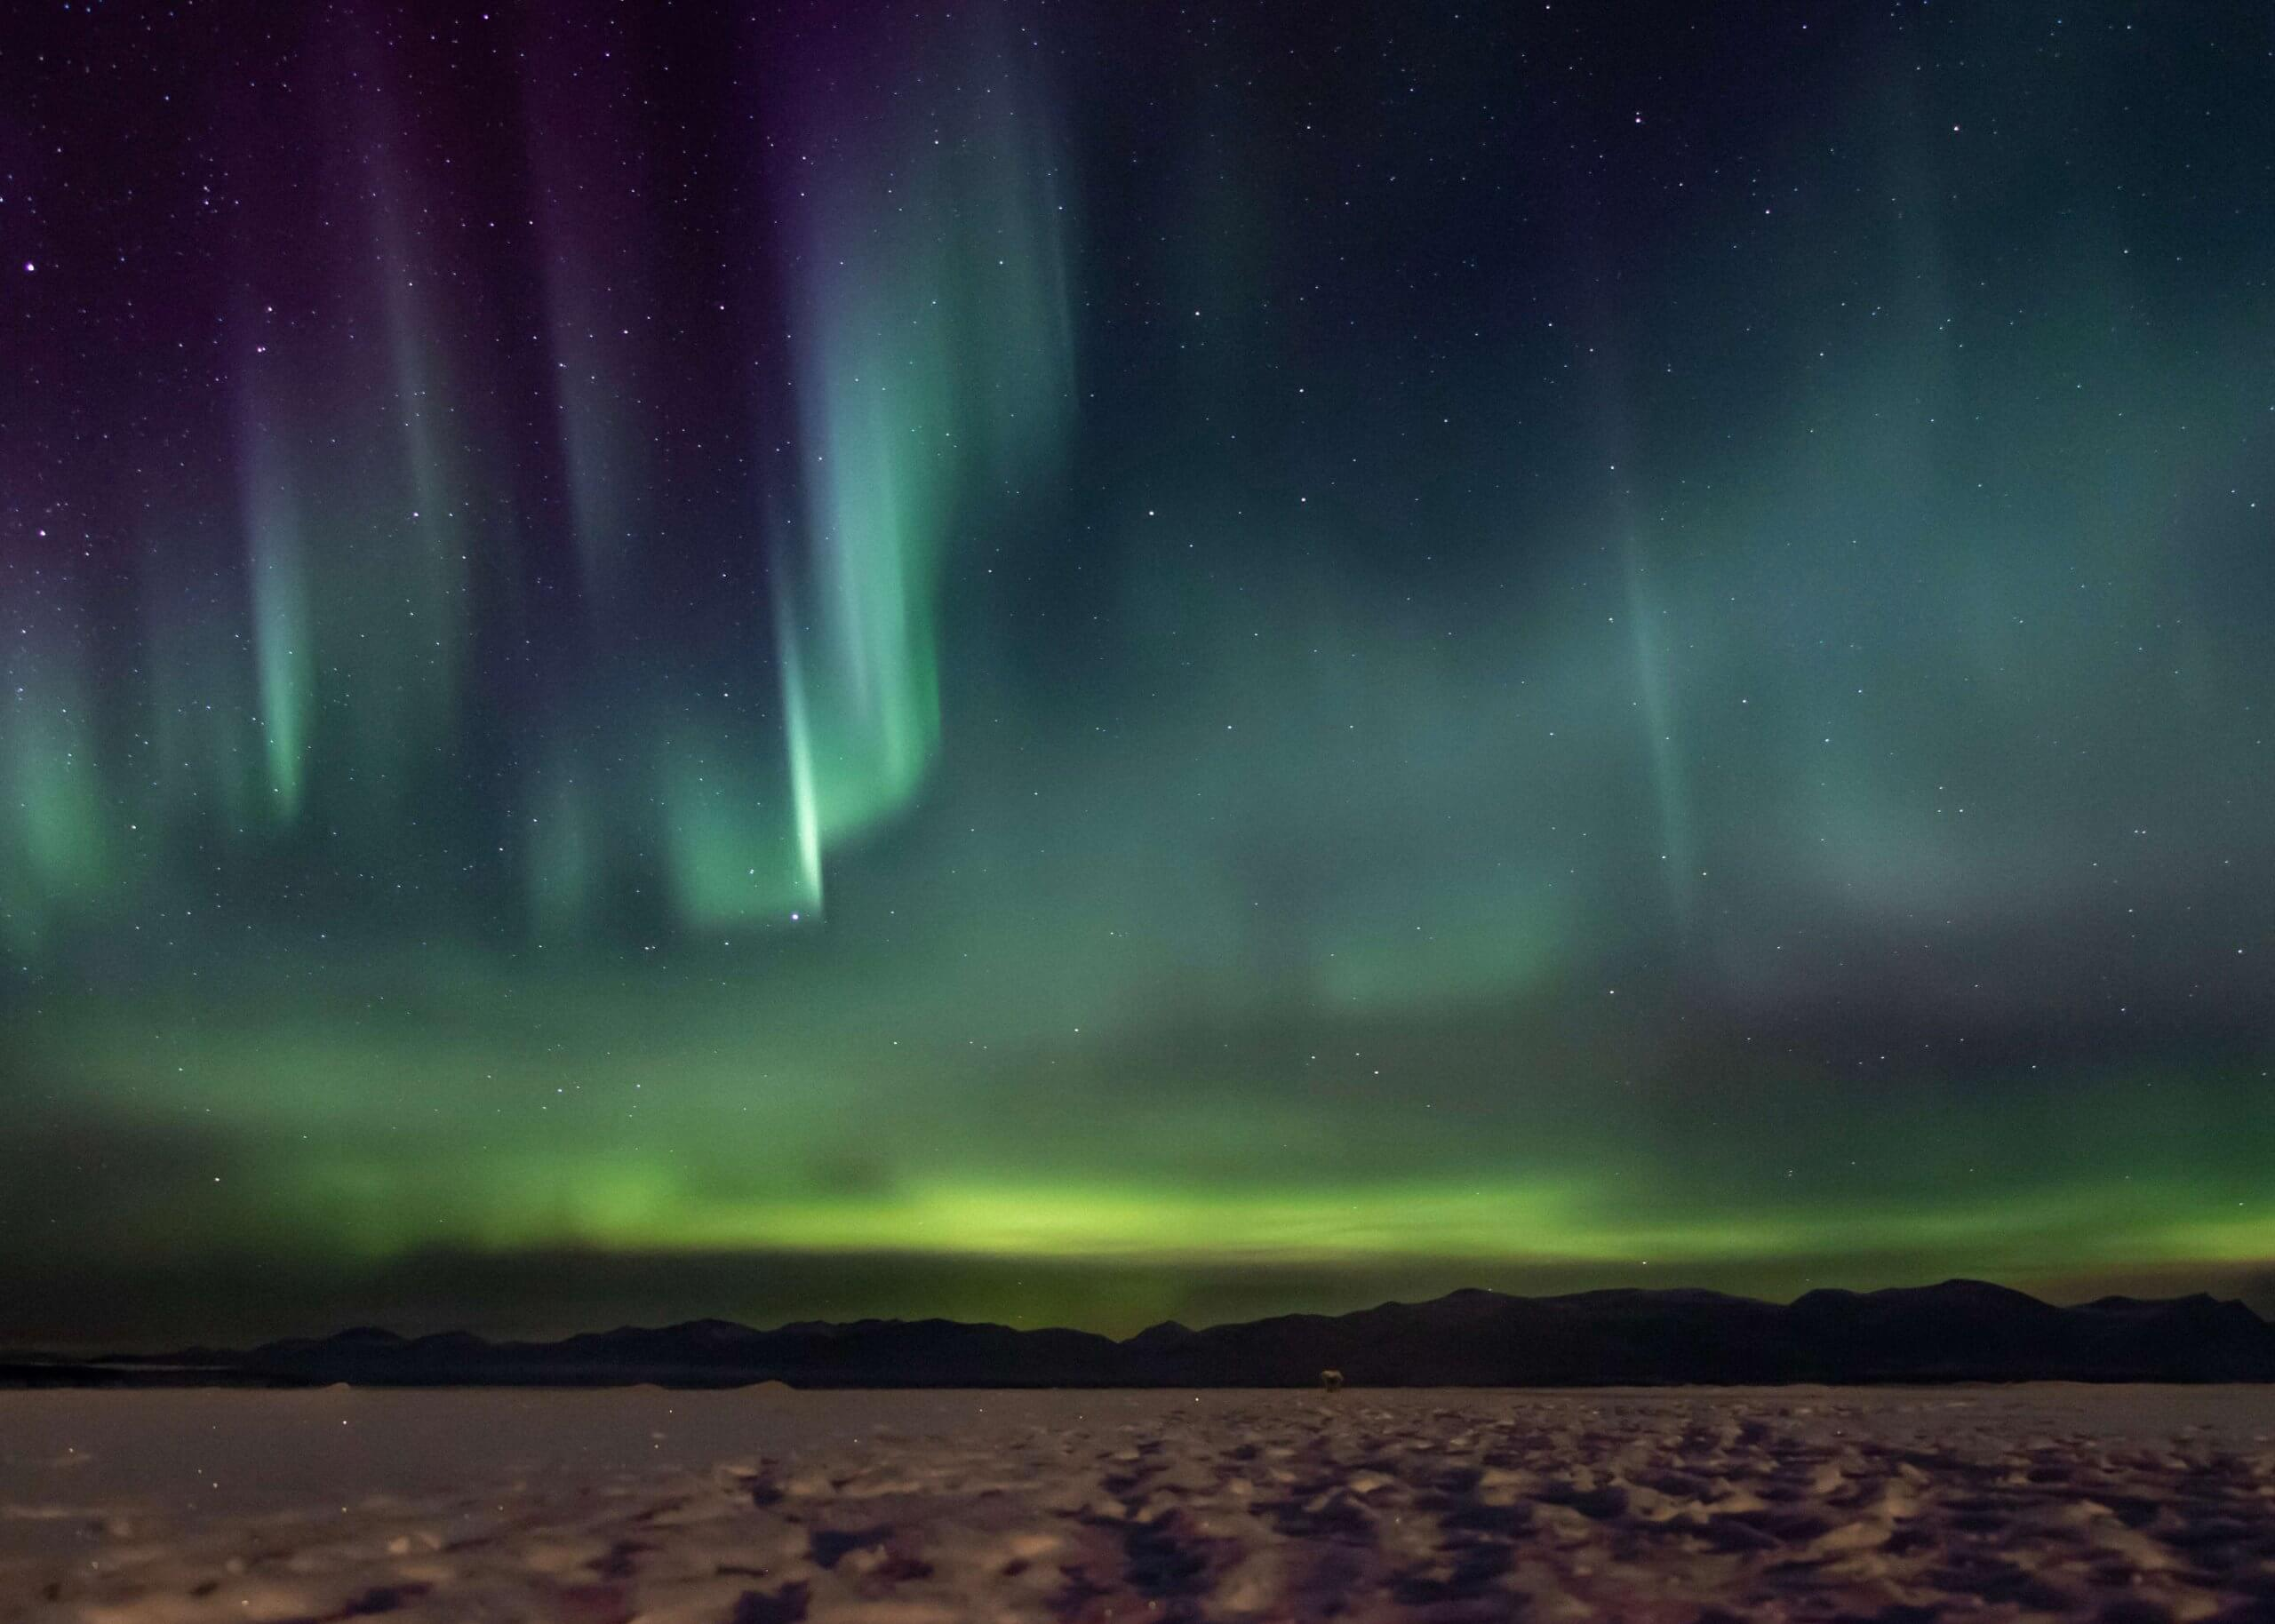 Shades of green and purple northern lights soar through the sky over Kluane Lake, Yukon